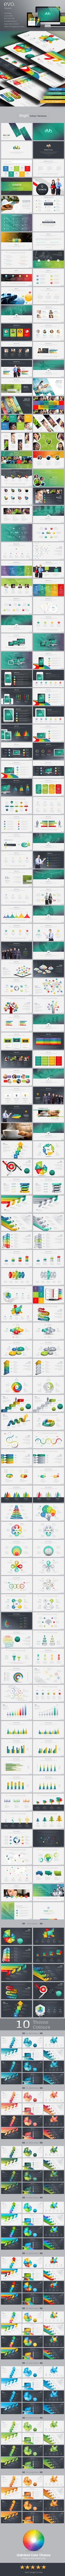 Evo PowerPoint Template #design Download: http://graphicriver.net/item/evo-template/12270582?ref=ksioks